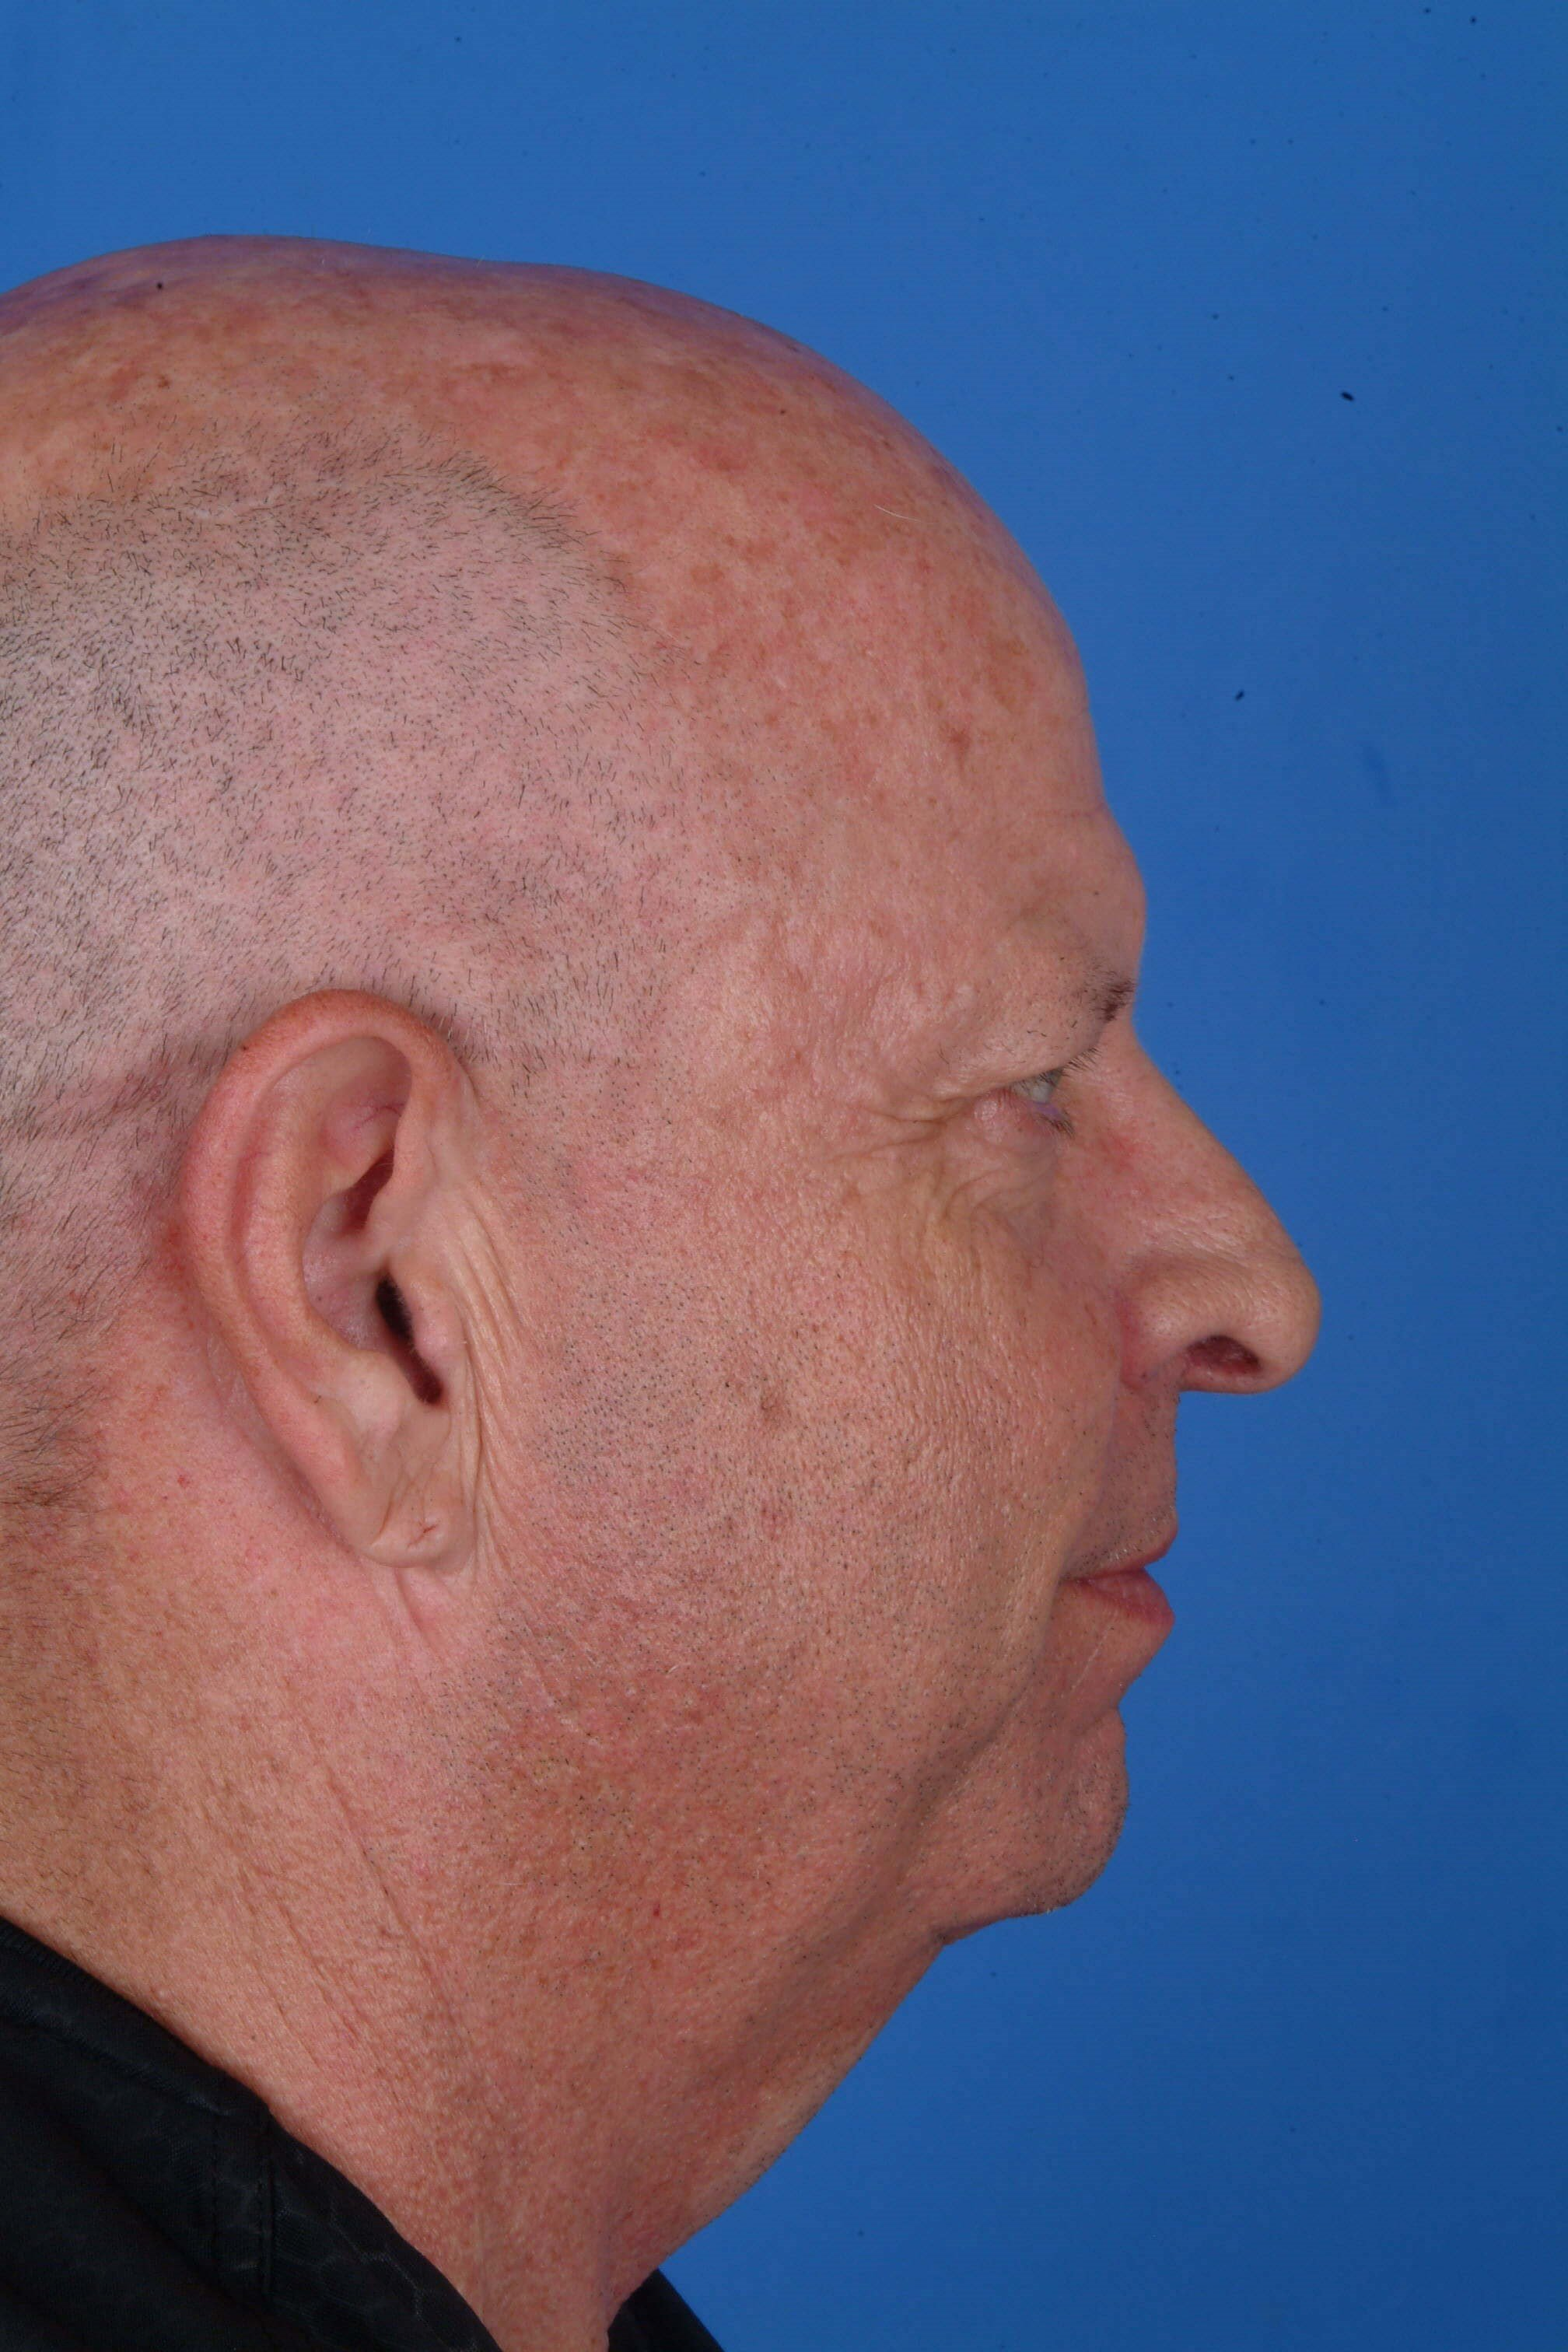 Profile View Before Surgery with Dr. Kridel